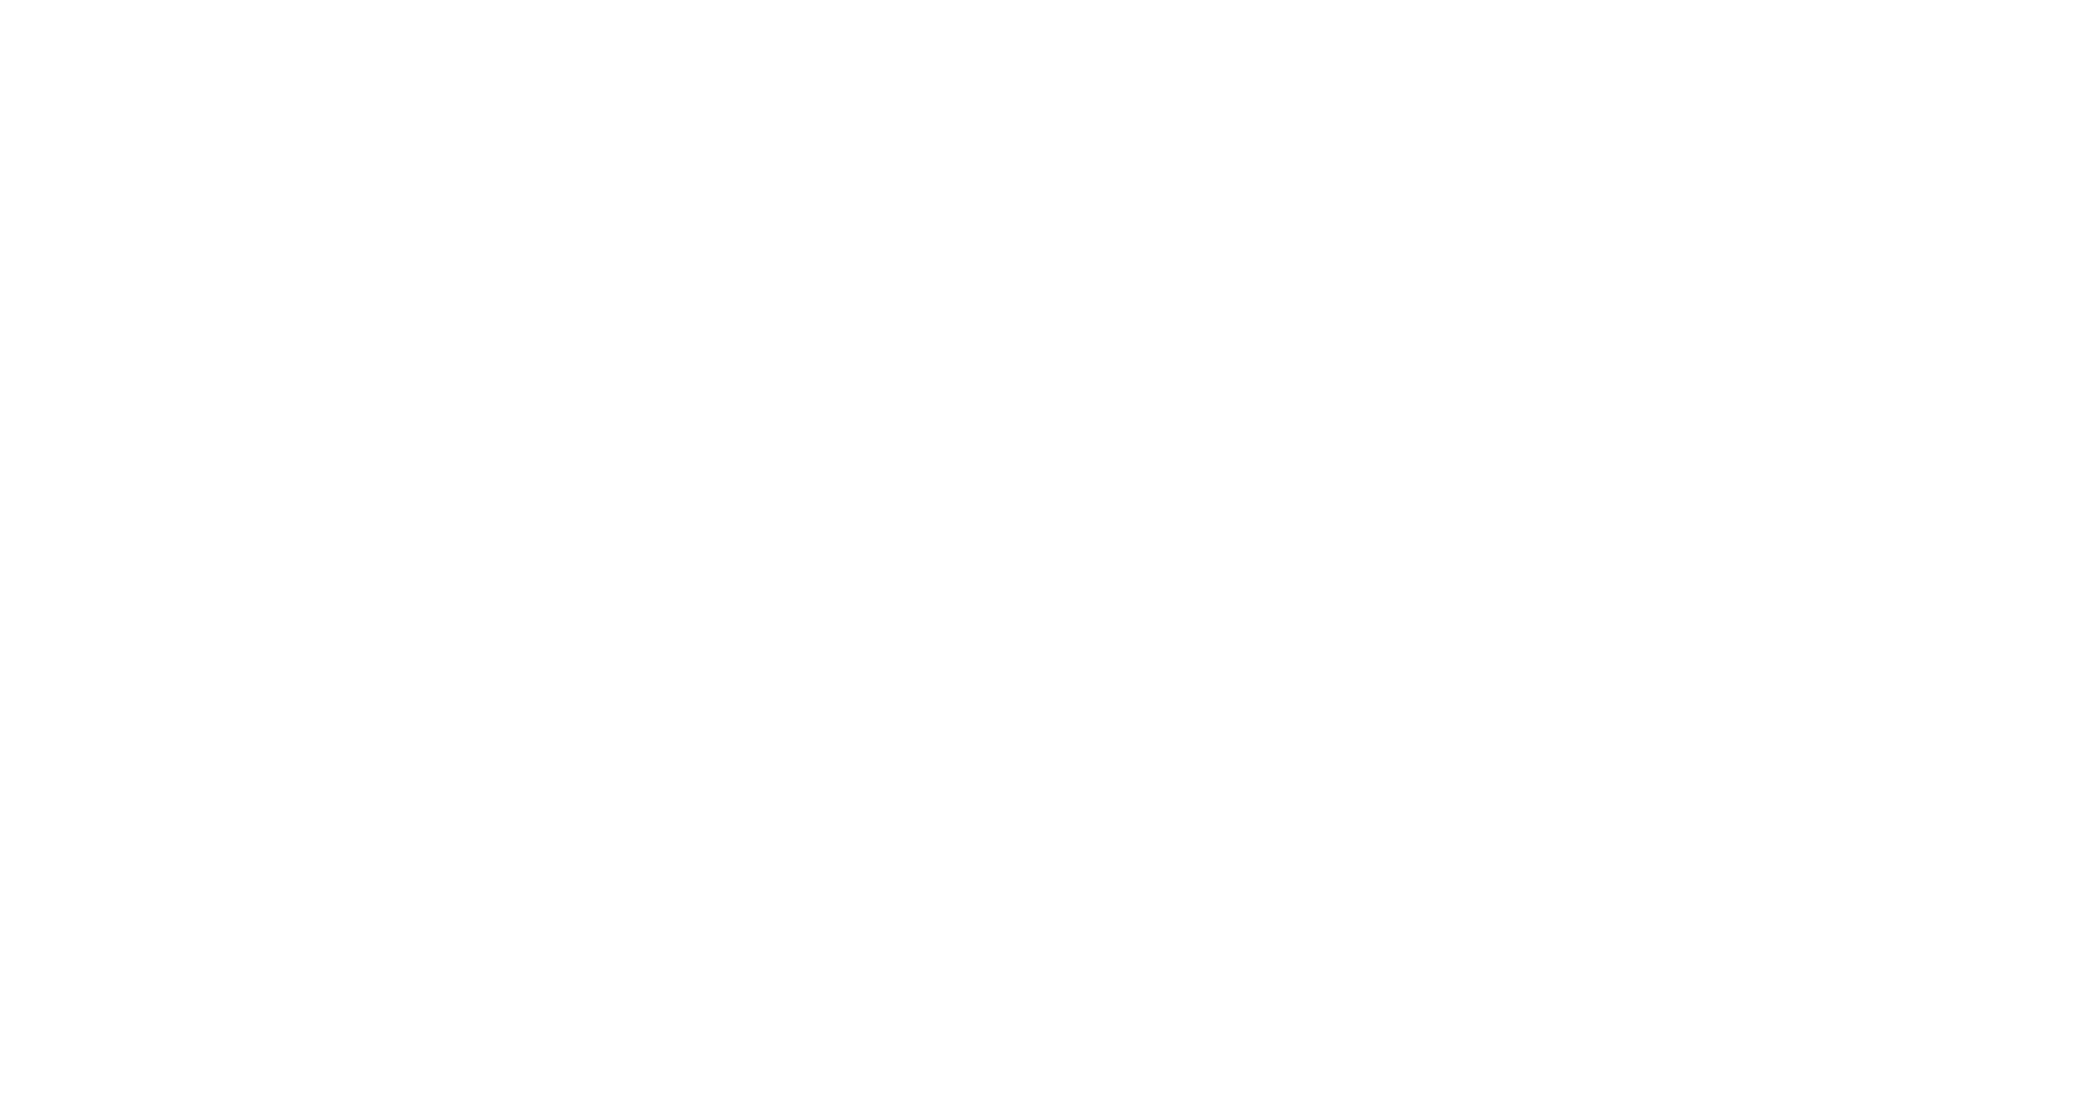 VEHICLE FINANCE.png